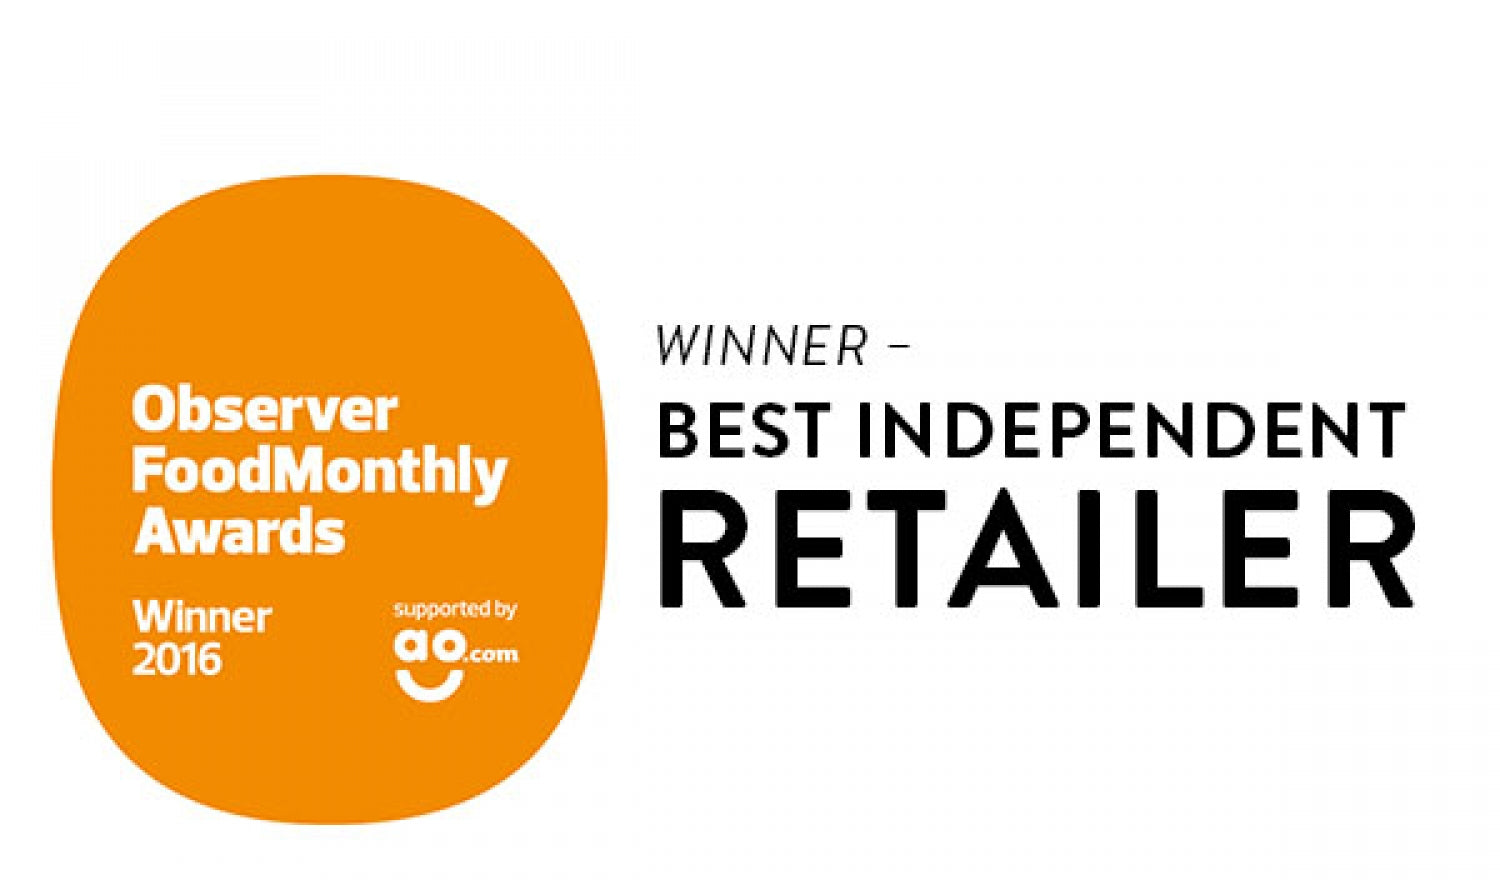 OFM Awards: Best Independent Retailer